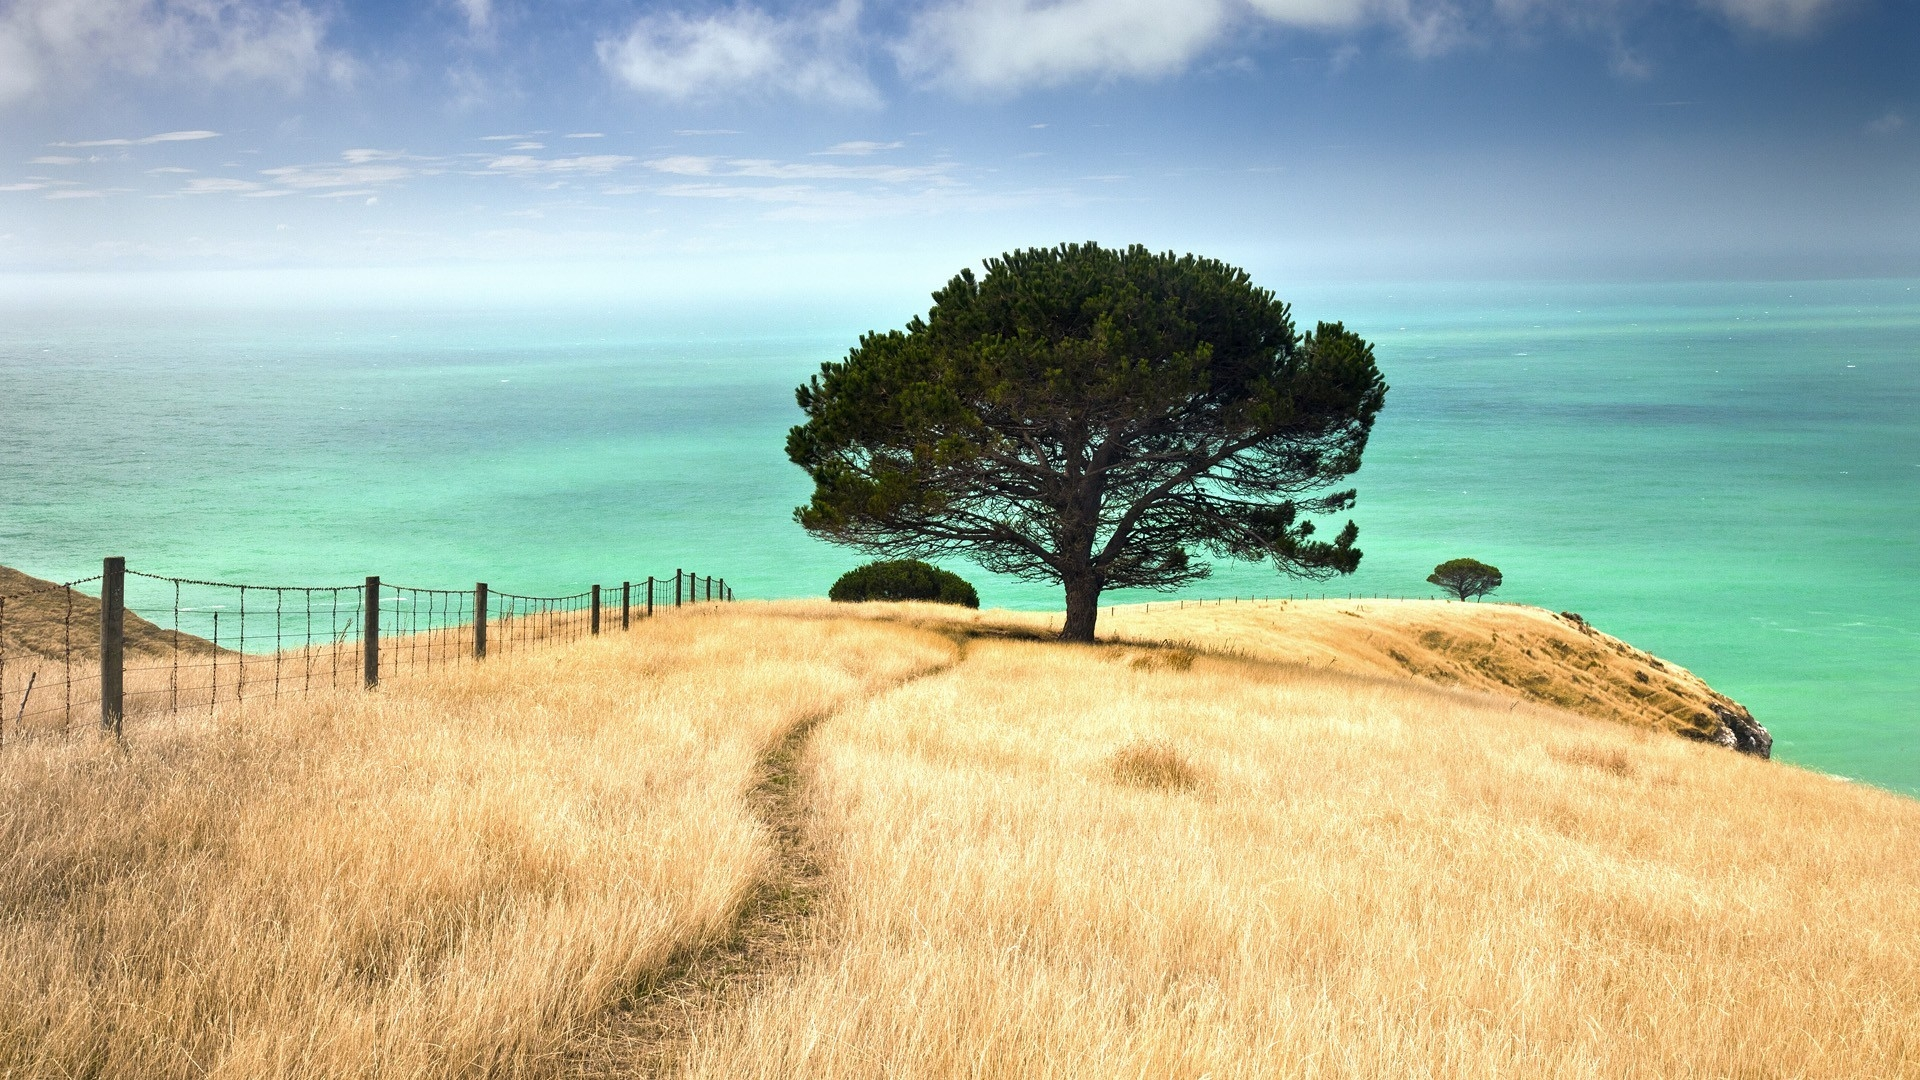 Best-background-images-new-zealand-New-Zealand-Best-intended-for-Backgroun-wallpaper-wp3603223